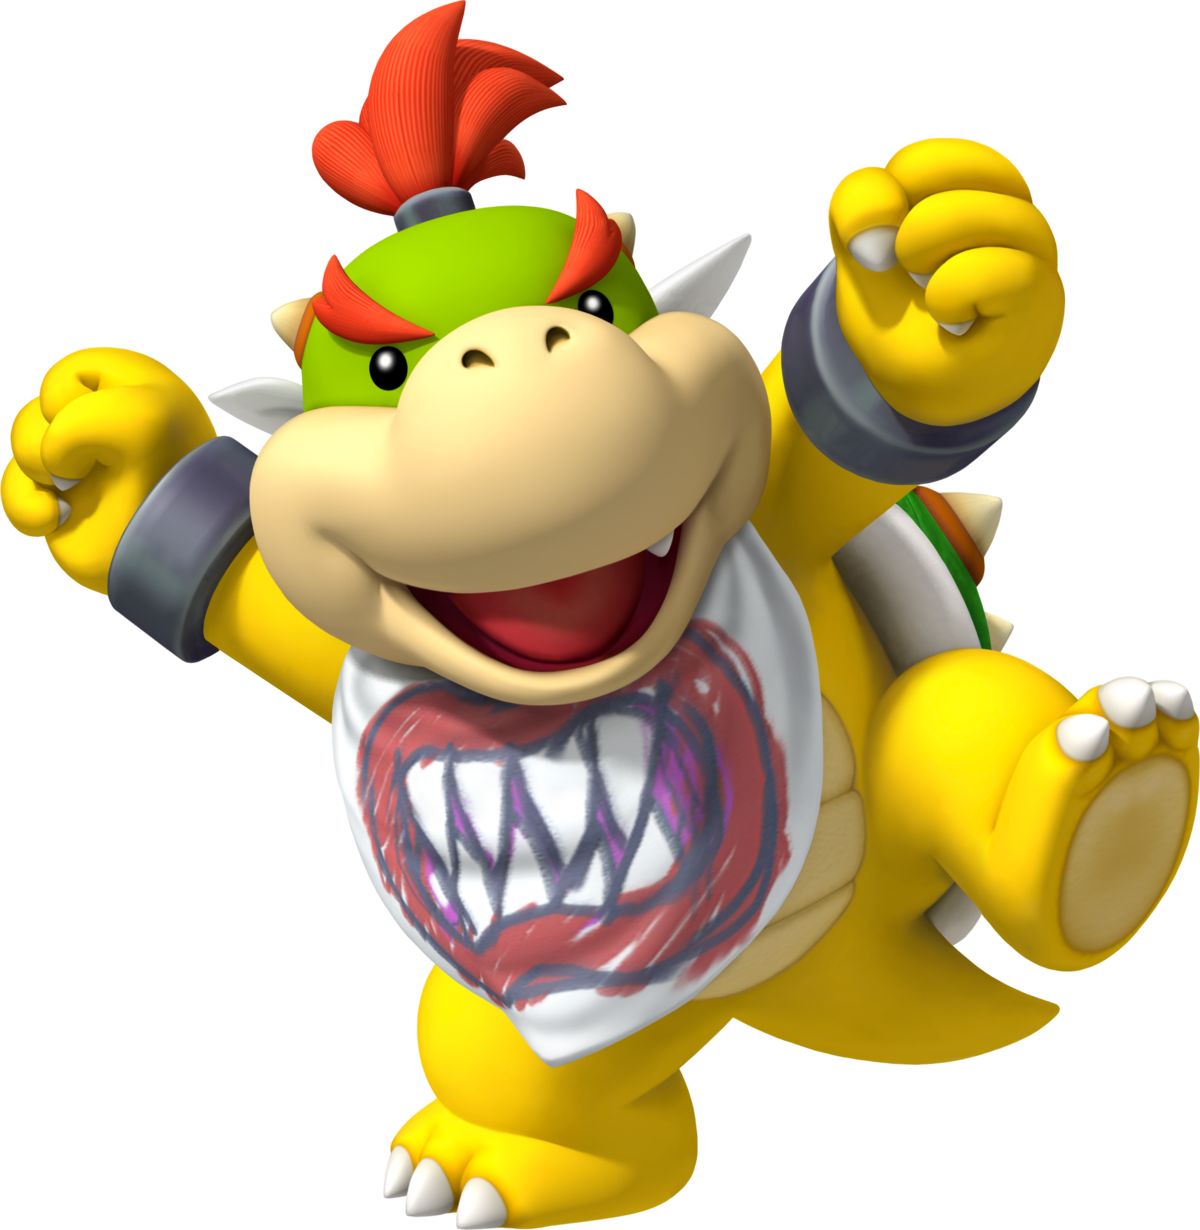 Bowser Jr  | SuperMarioGlitchy4 Wiki | FANDOM powered by Wikia